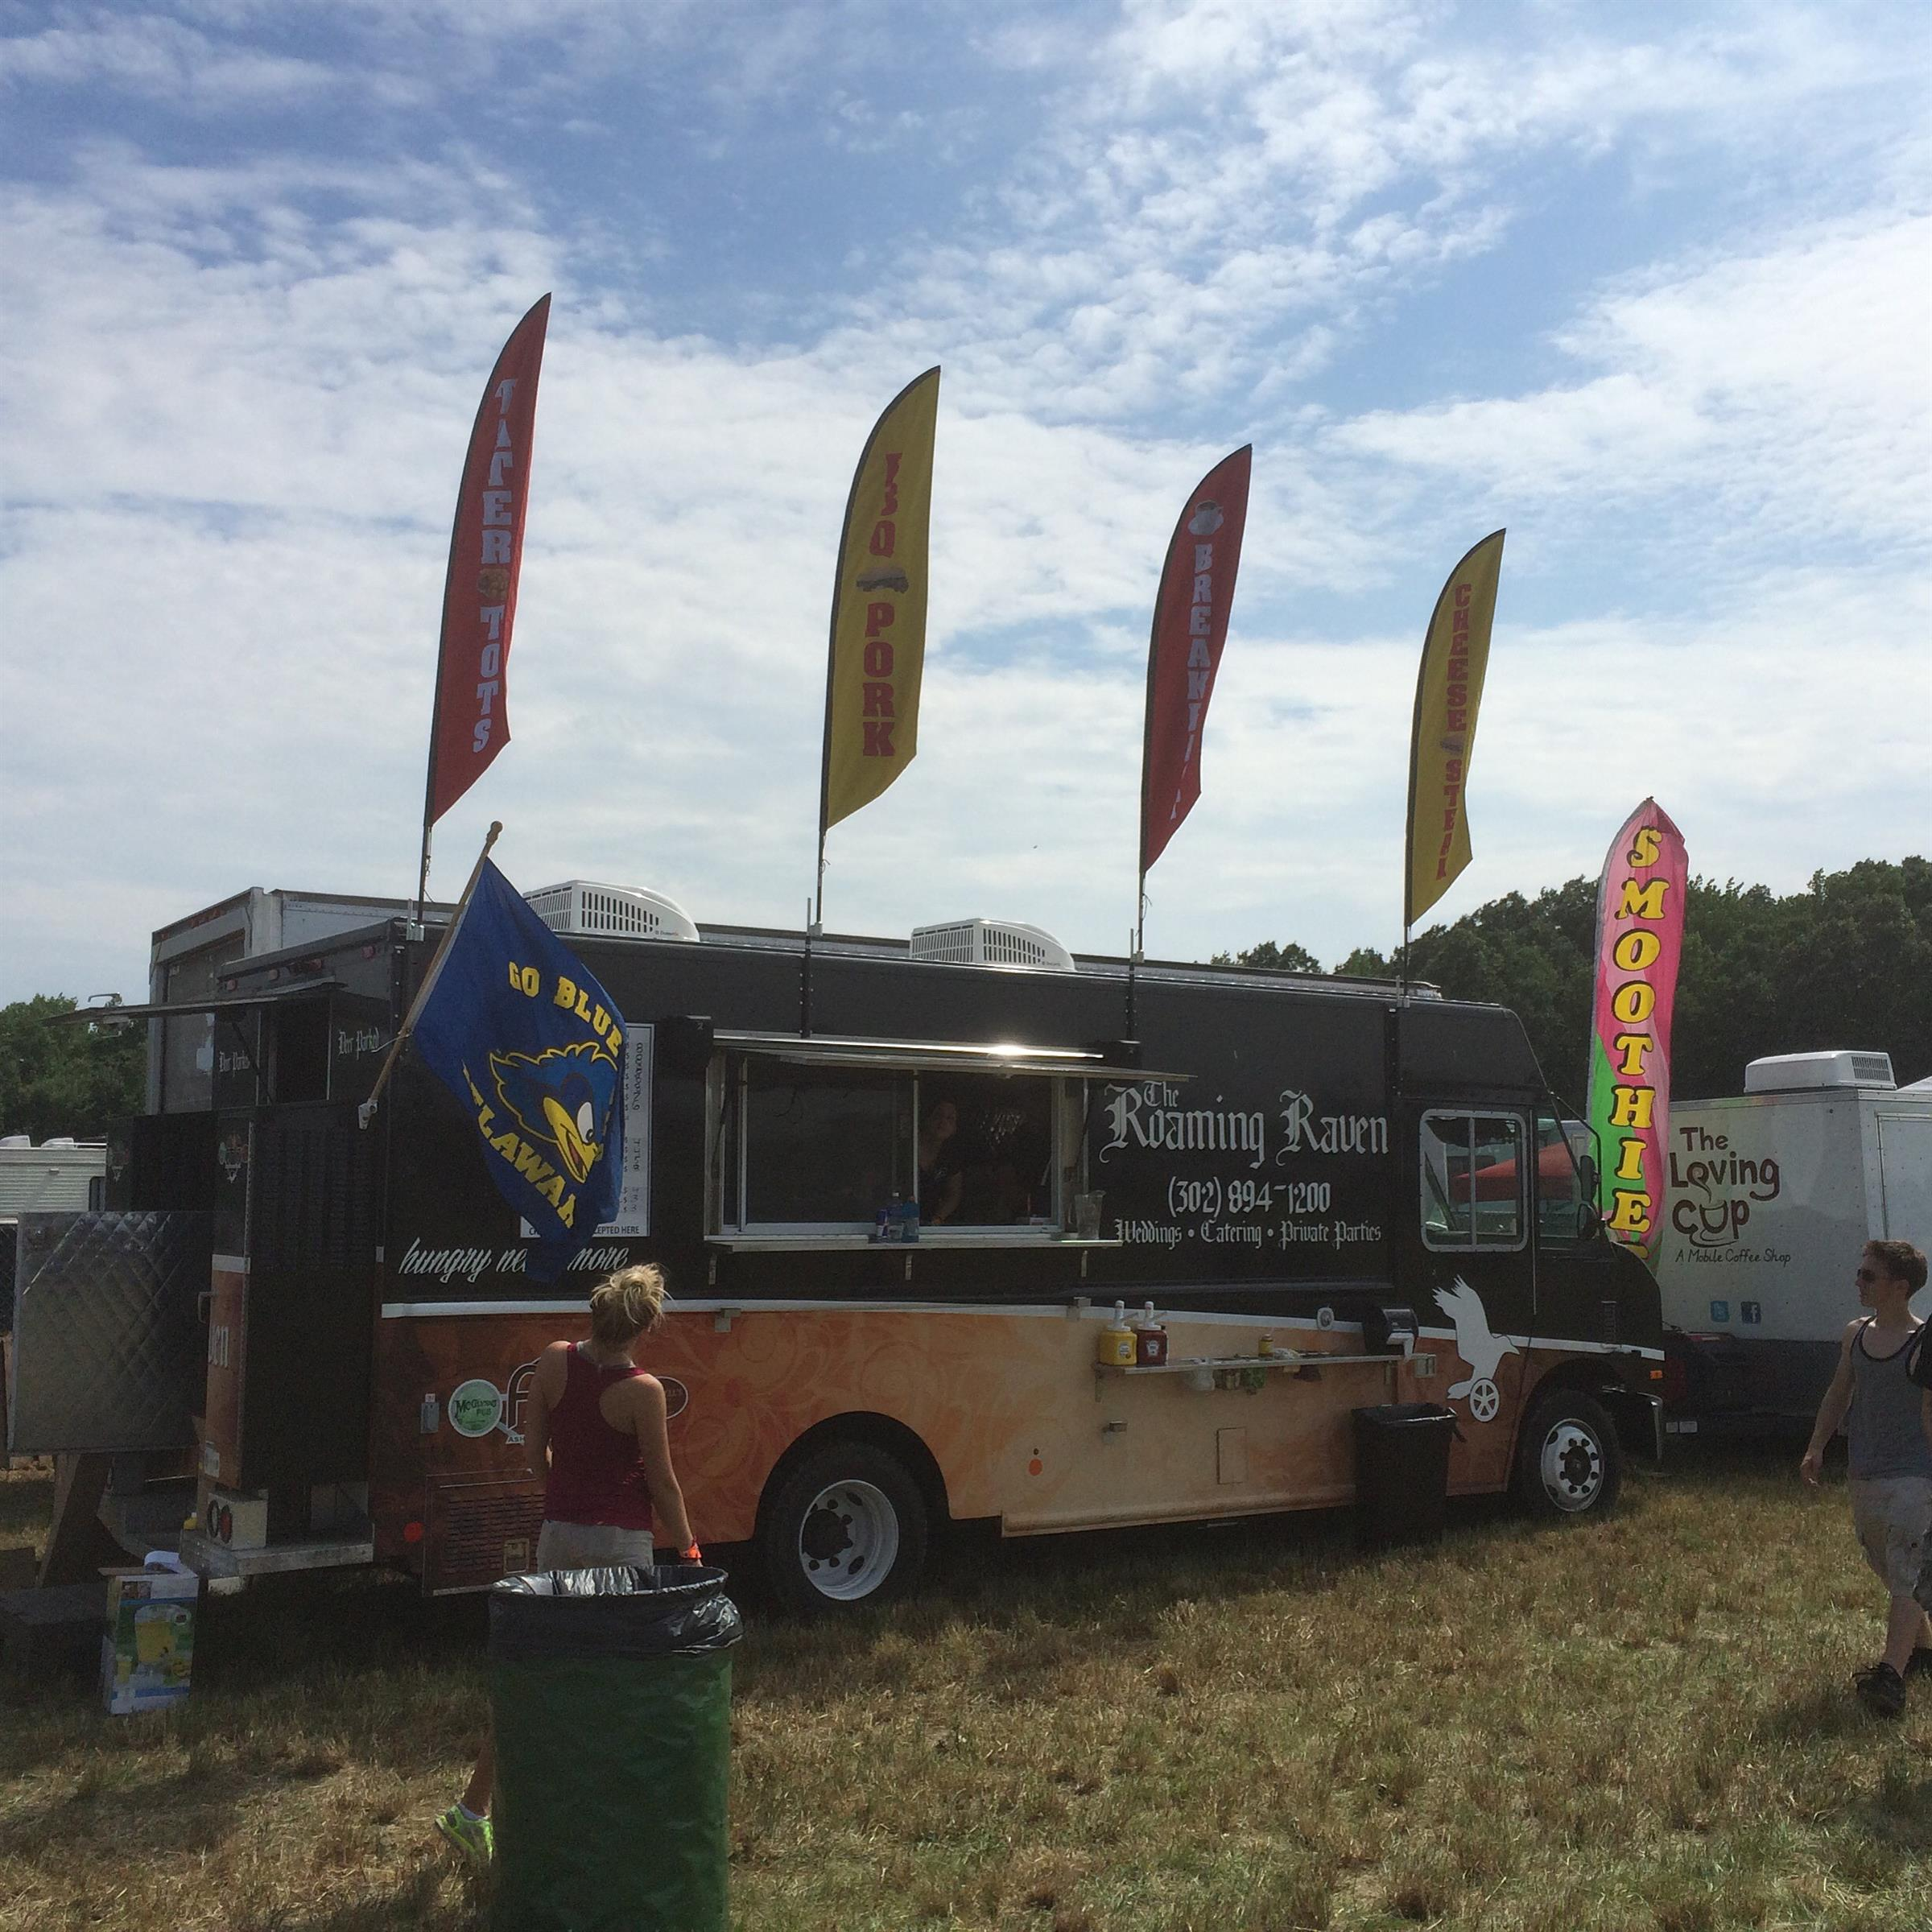 the roaming raven food truck at an outdoor event with flags on top